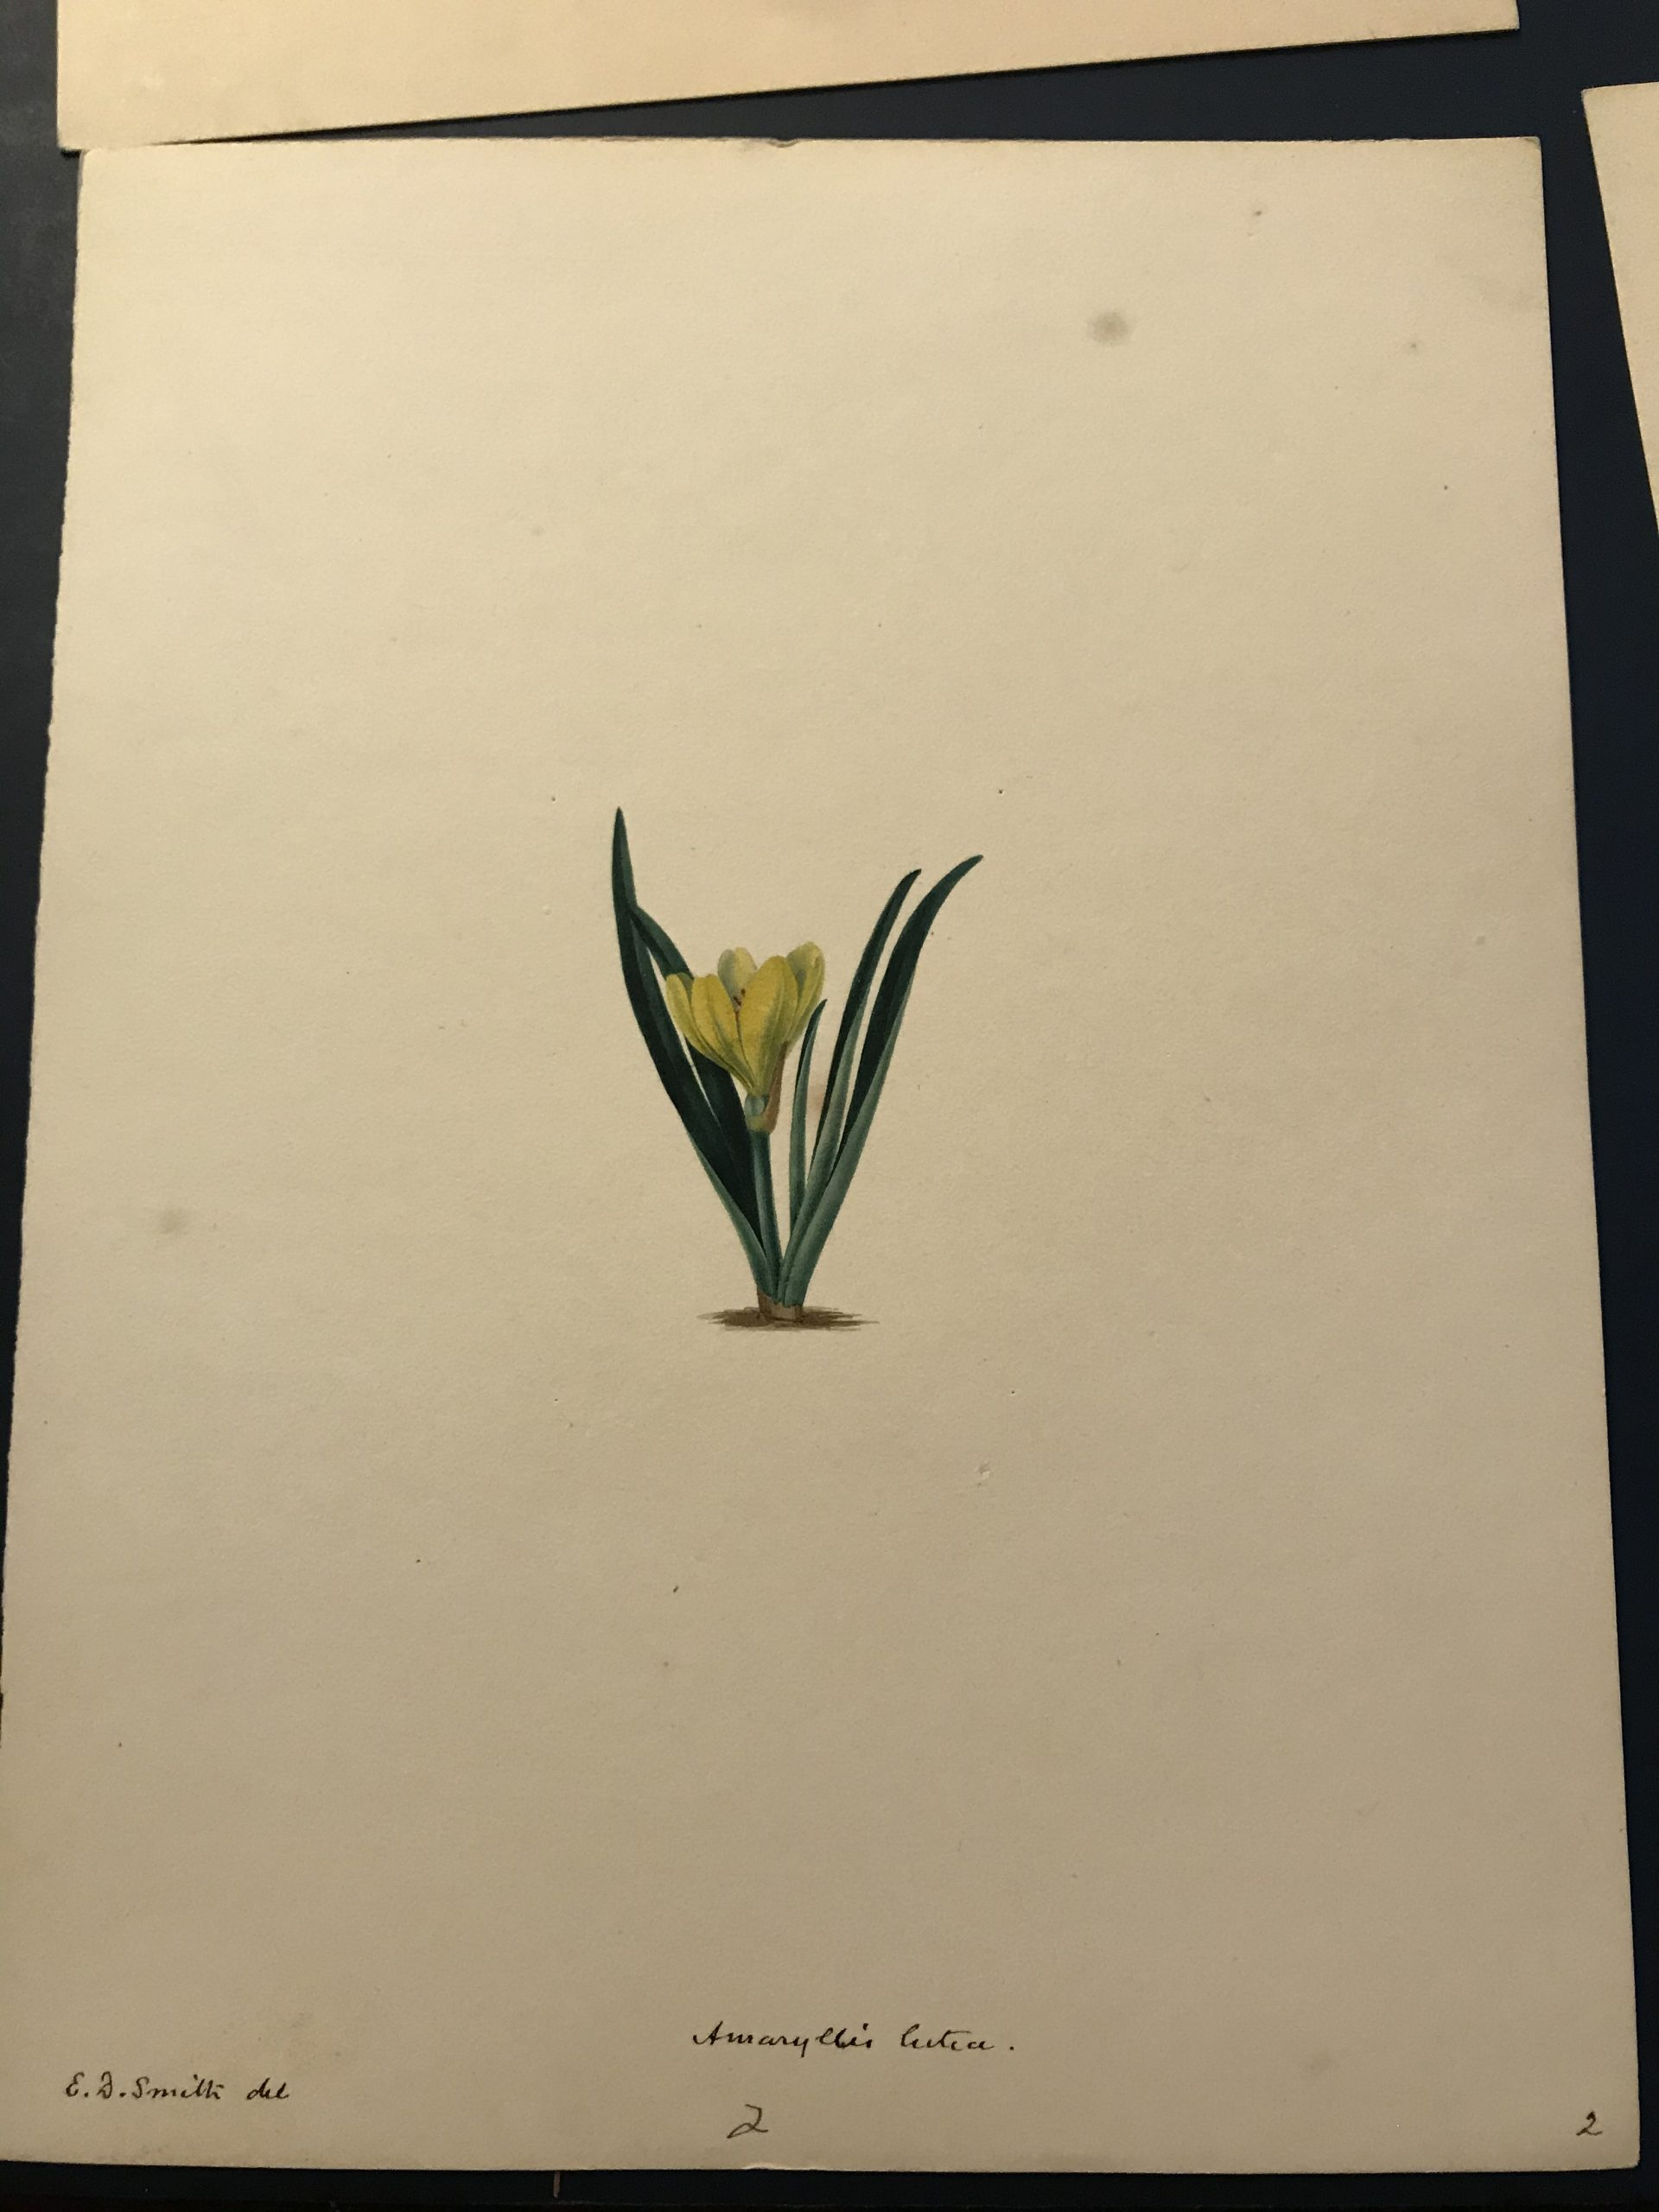 Original watercolour of Amaryllis lutea from Volume 1 of Maund's The Botanic Garden at NHM Library Special Collections Botany Drawings CUPD 12